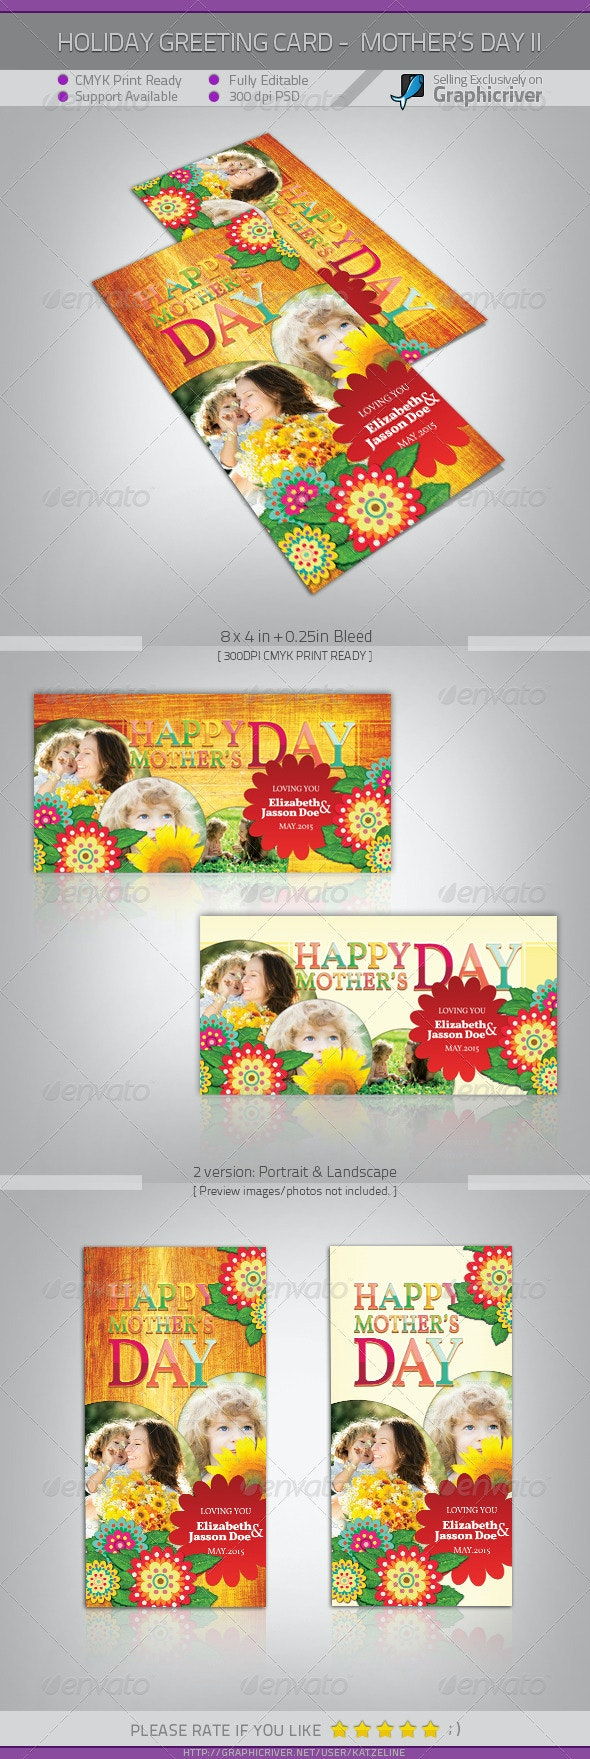 Mother's Day Greeting Card - Flowers II - Holiday Greeting Cards